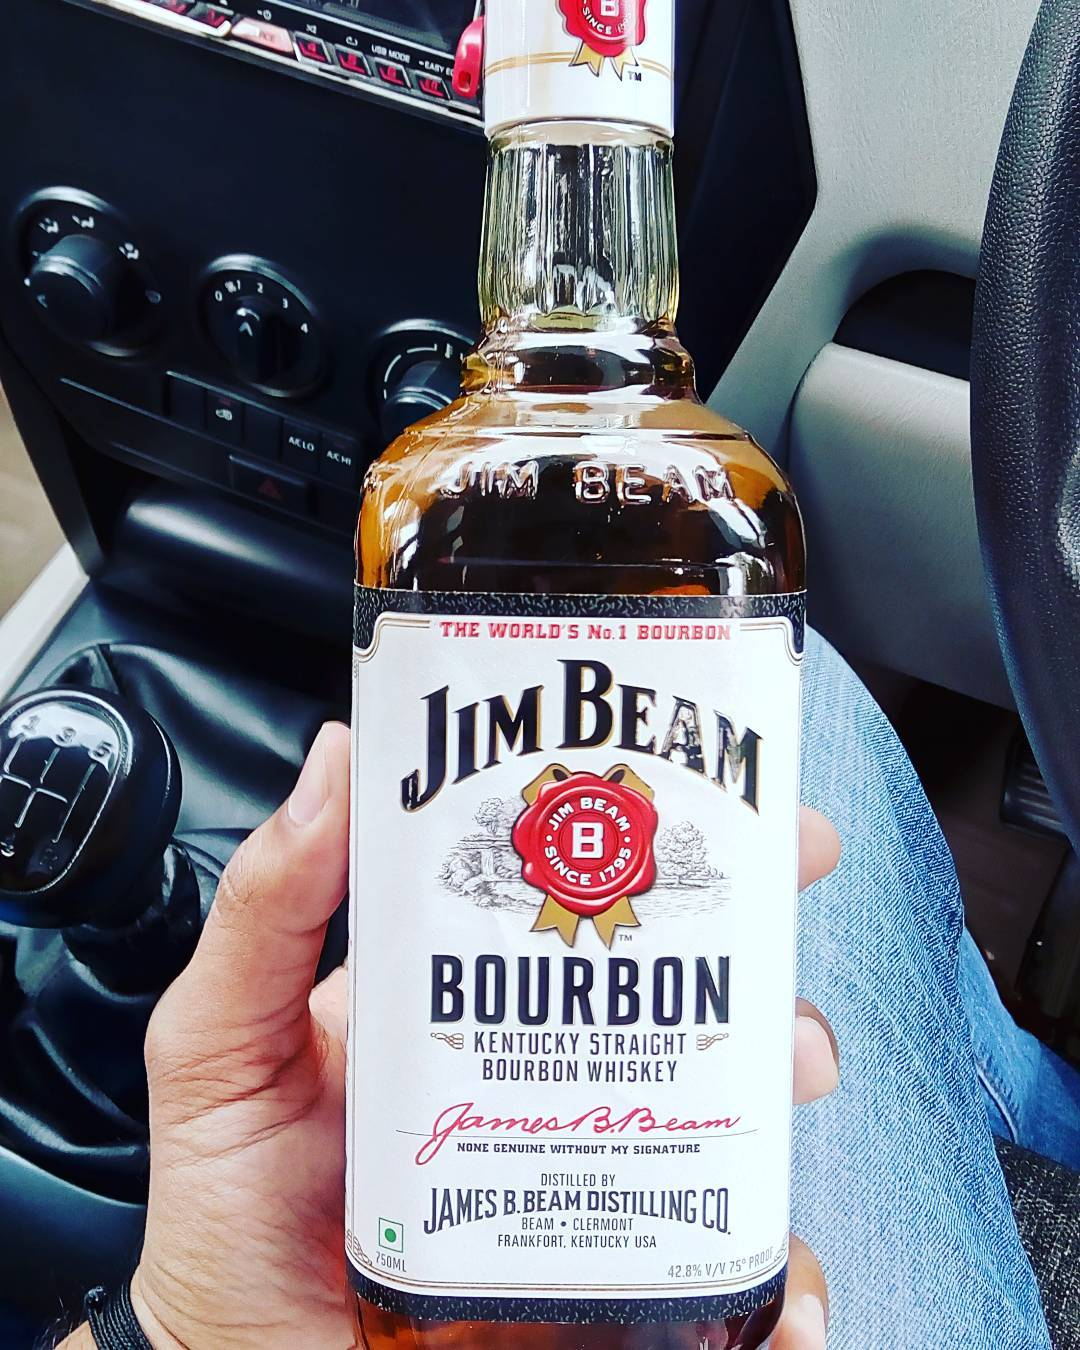 Jim Beam 40 Alcohol At The Wheel Of The Car Canceraware